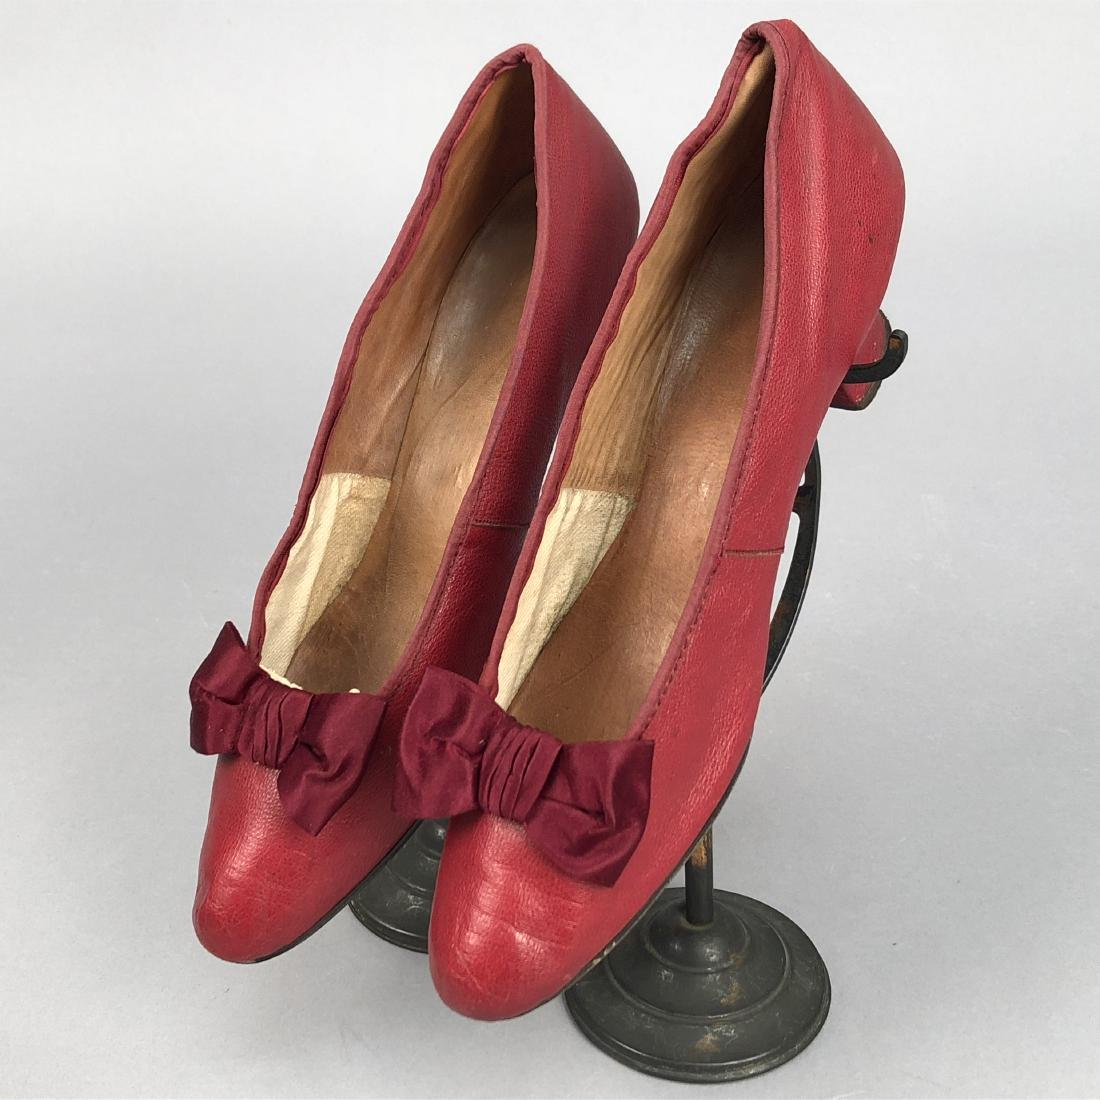 THREE PAIR LOW HEELED PUMPS with BOW VAMP, 1880s -1890s - 3